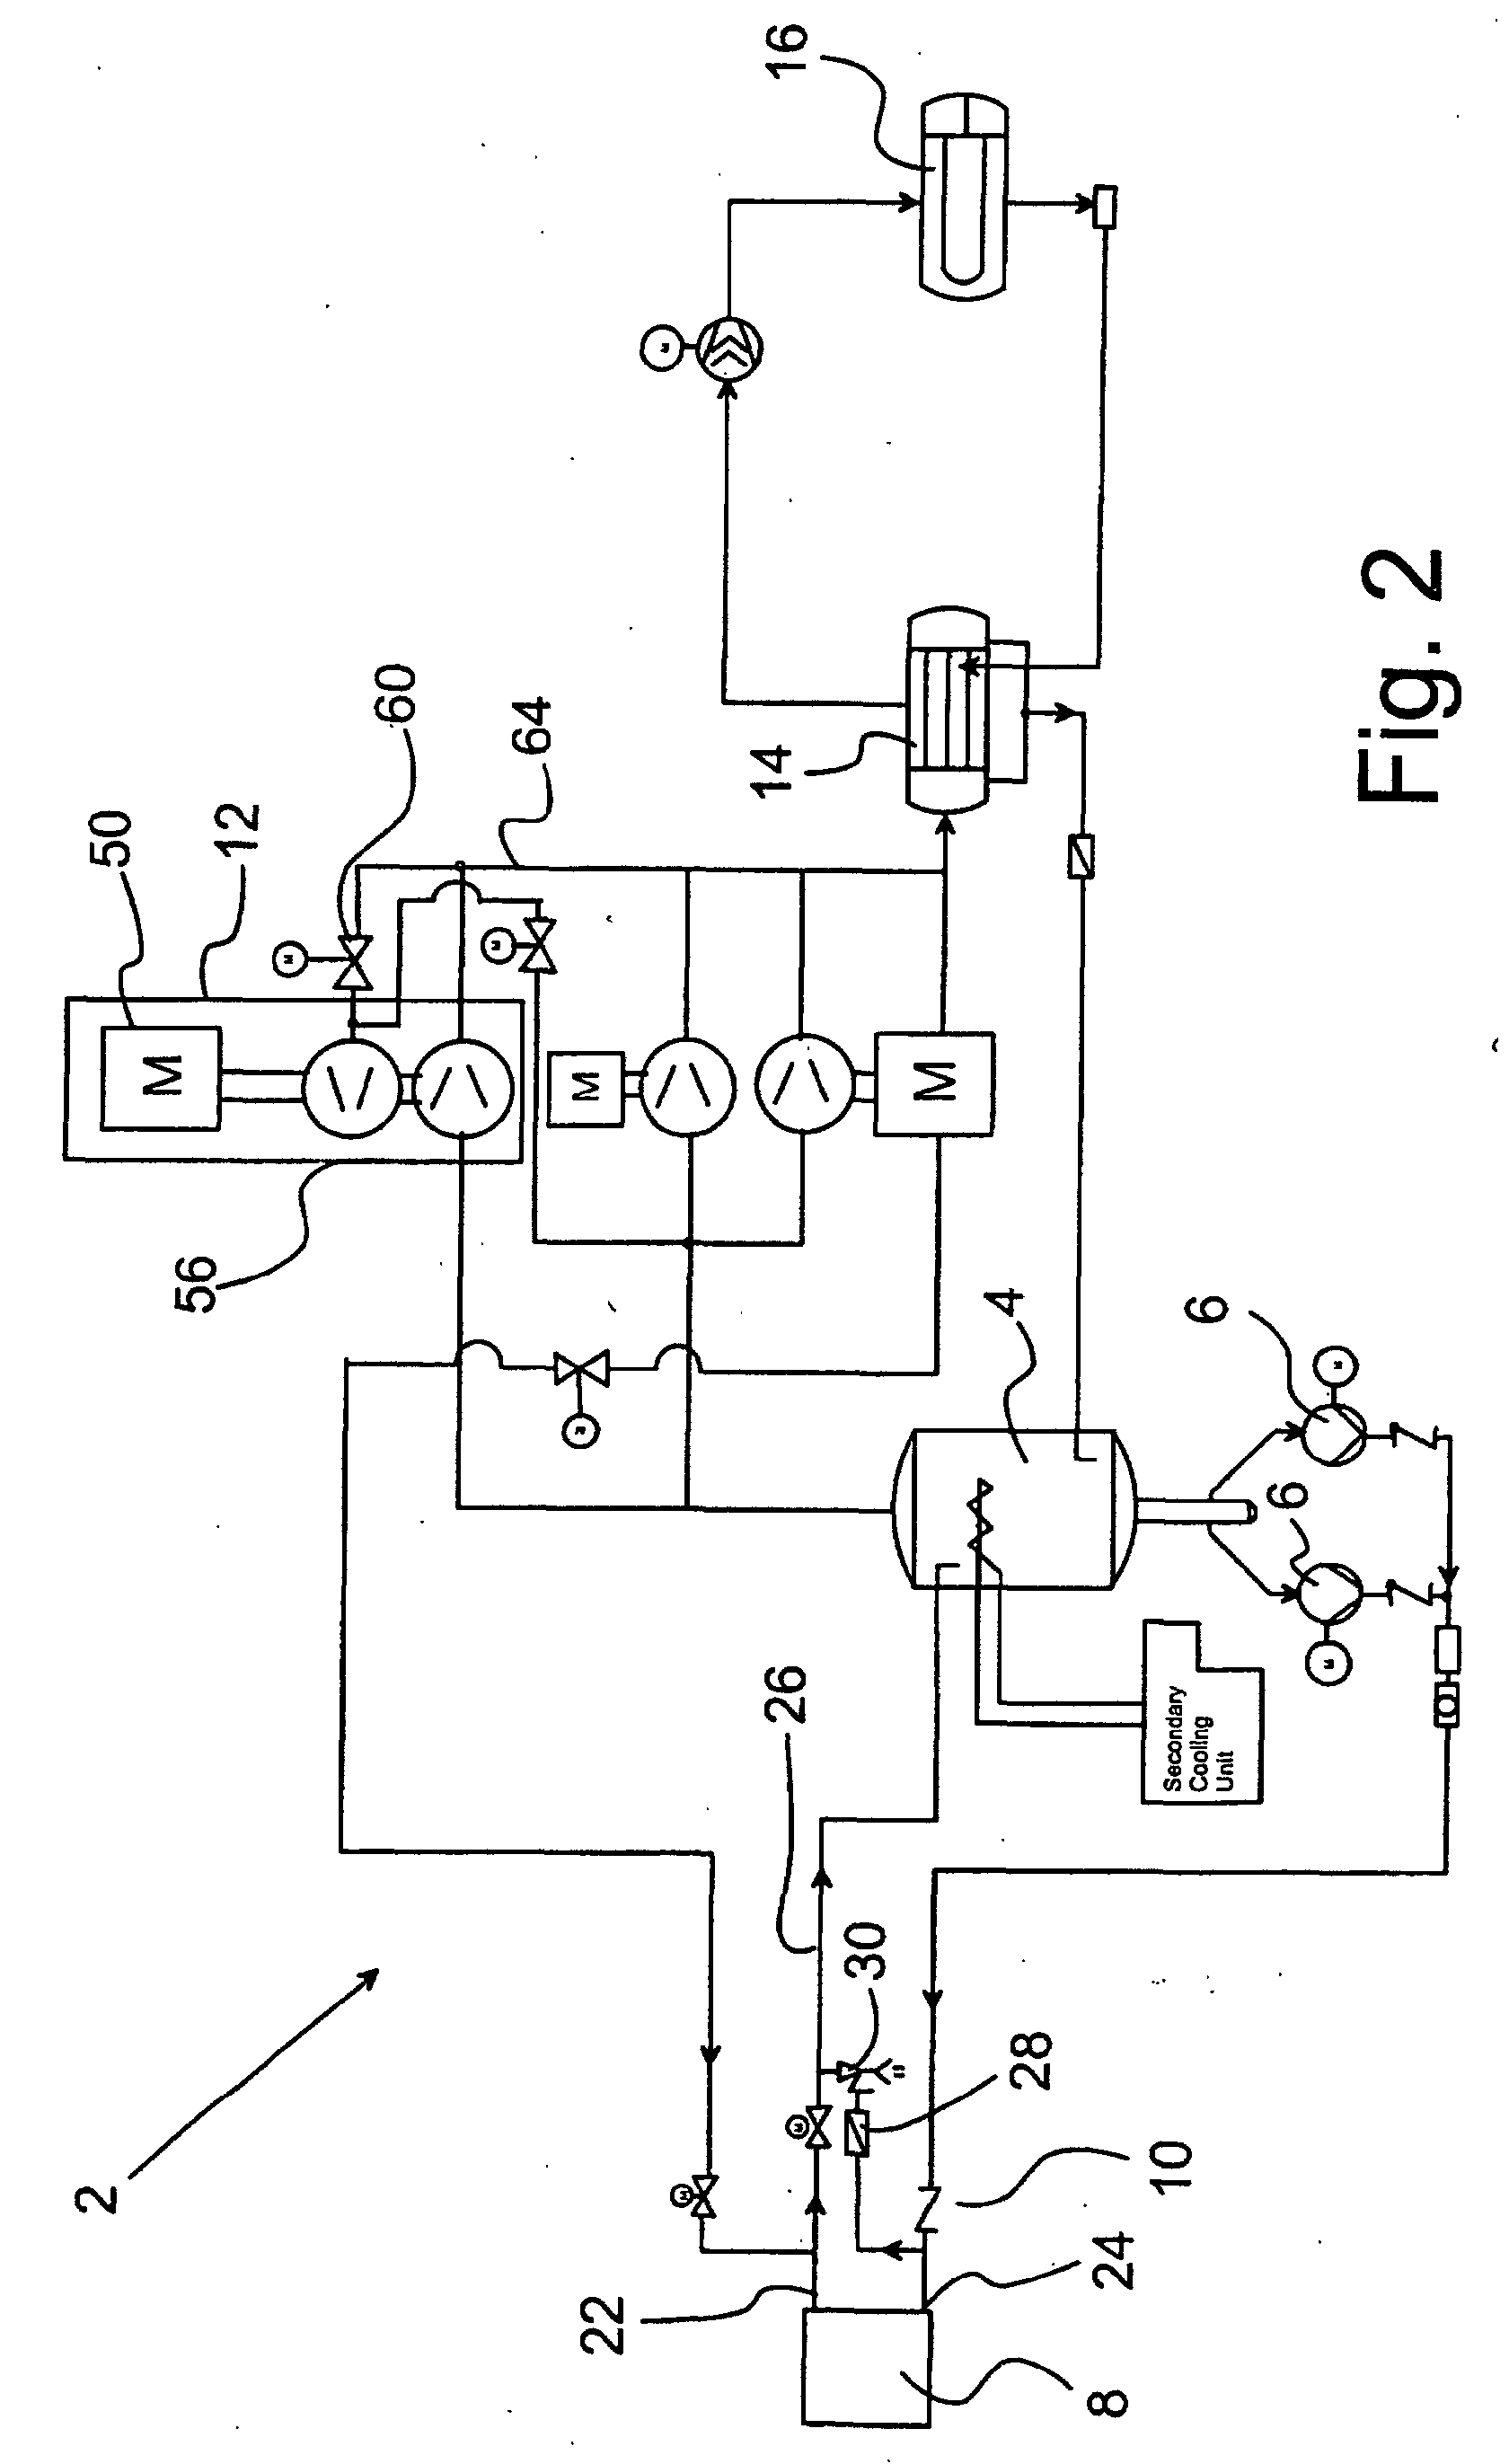 Larkin Evaporator Wiring Diagram : 32 Wiring Diagram